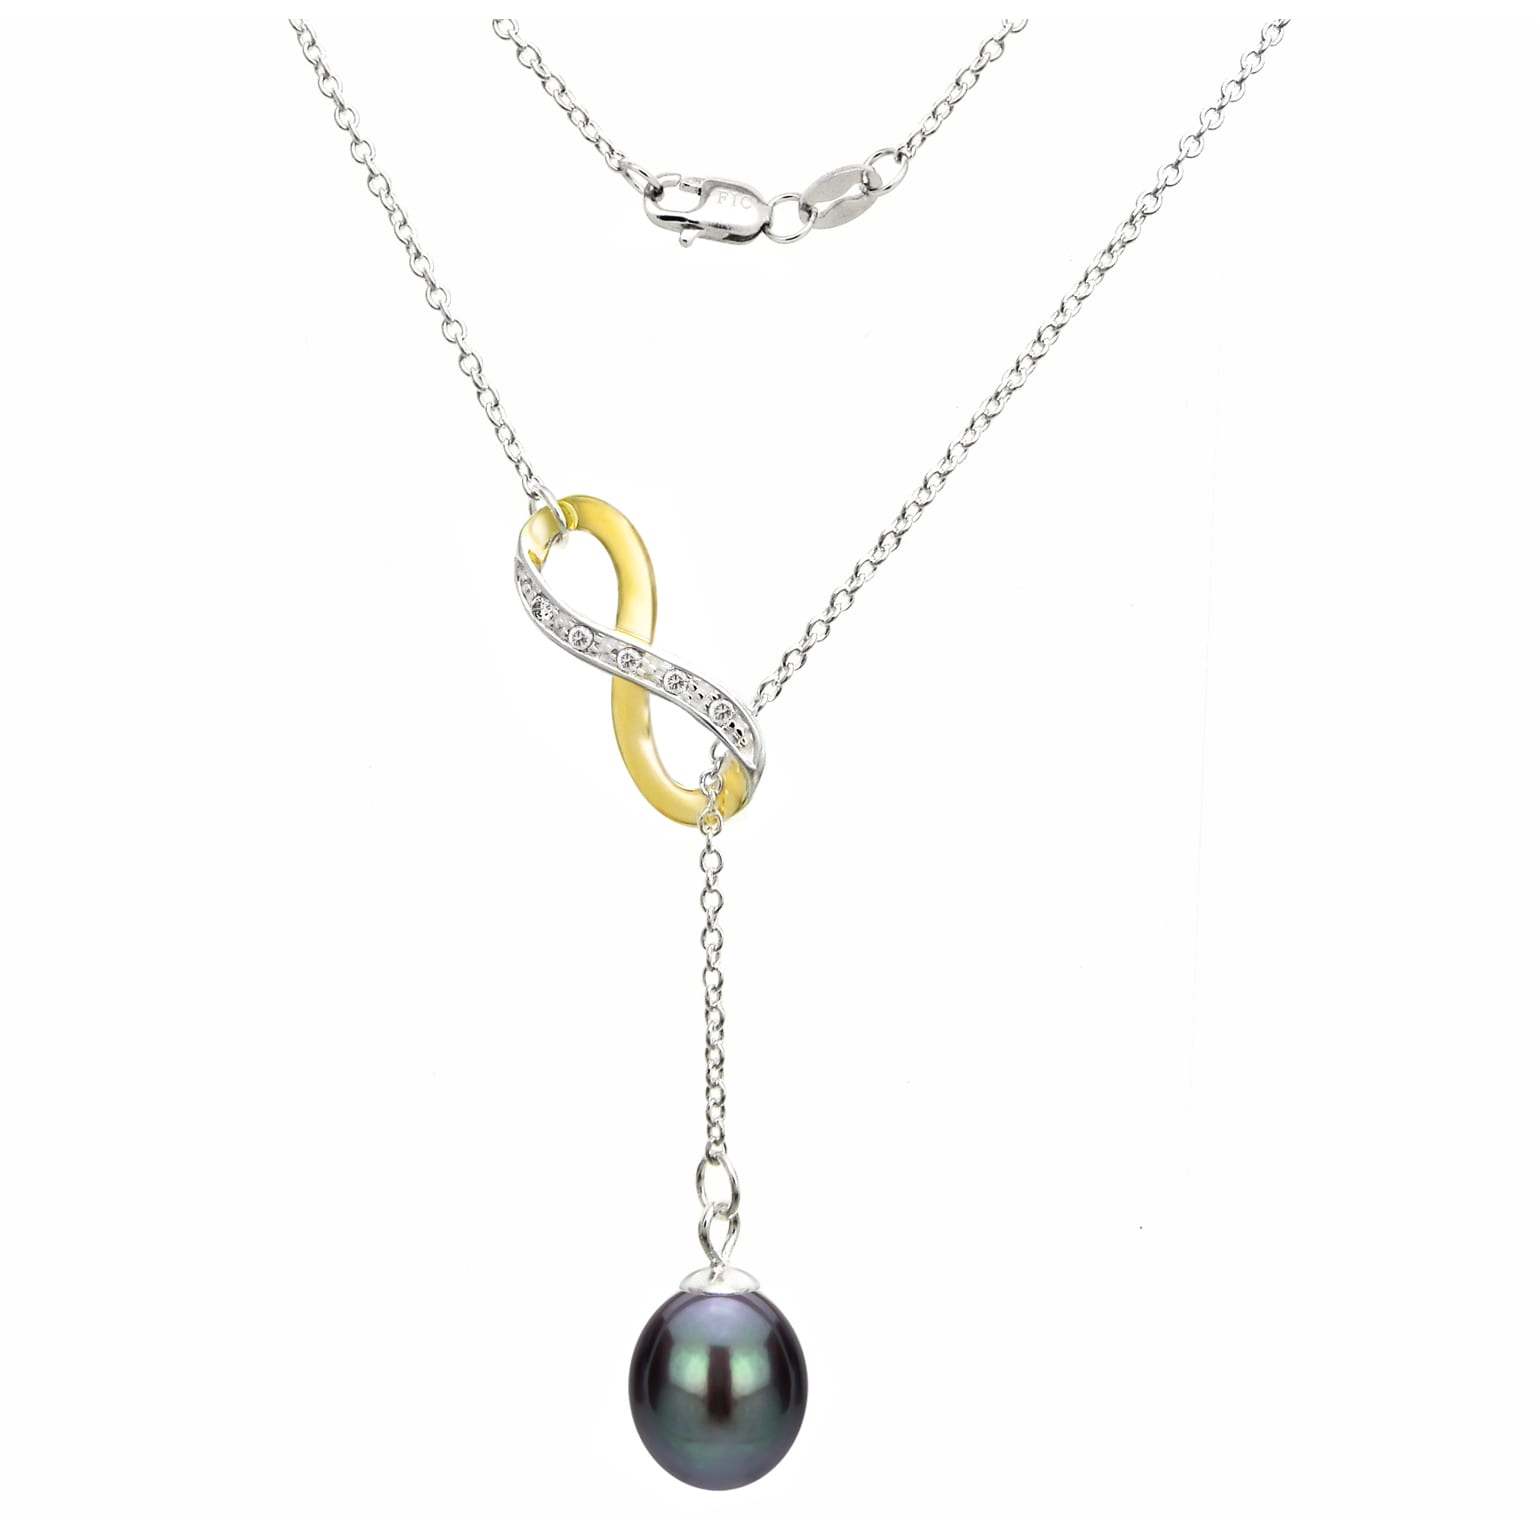 925 Sterling Silver Star Lariat White Pearl Pendant Necklace Genuine Freshwater